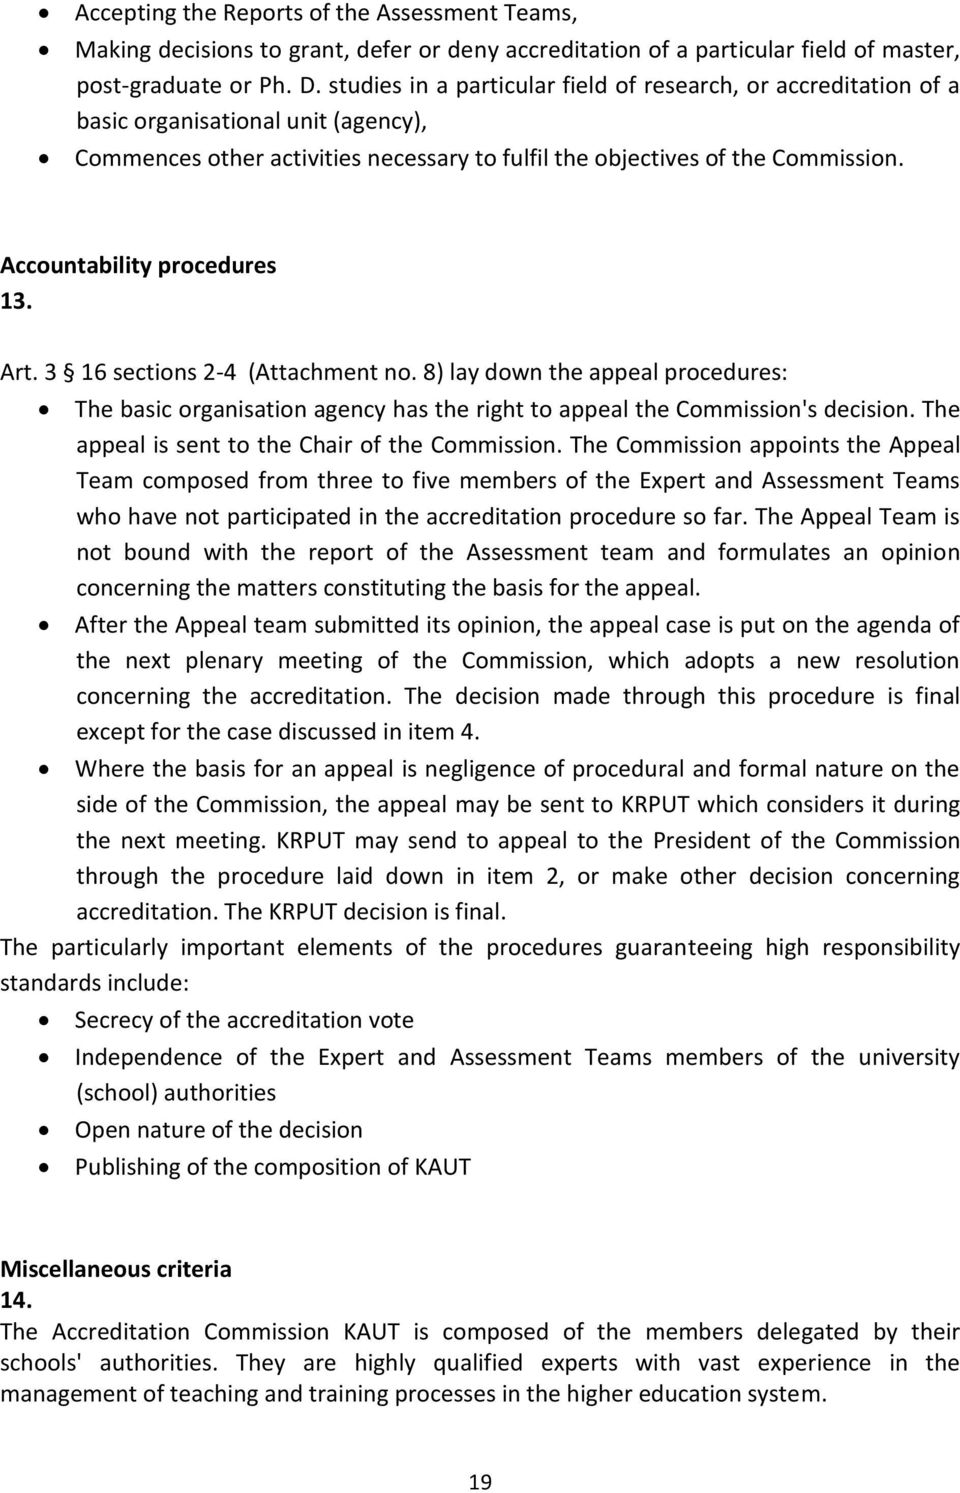 Accountability procedures 13. Art. 3 16 sections 2-4 (Attachment no. 8) lay down the appeal procedures: The basic organisation agency has the right to appeal the Commission's decision.